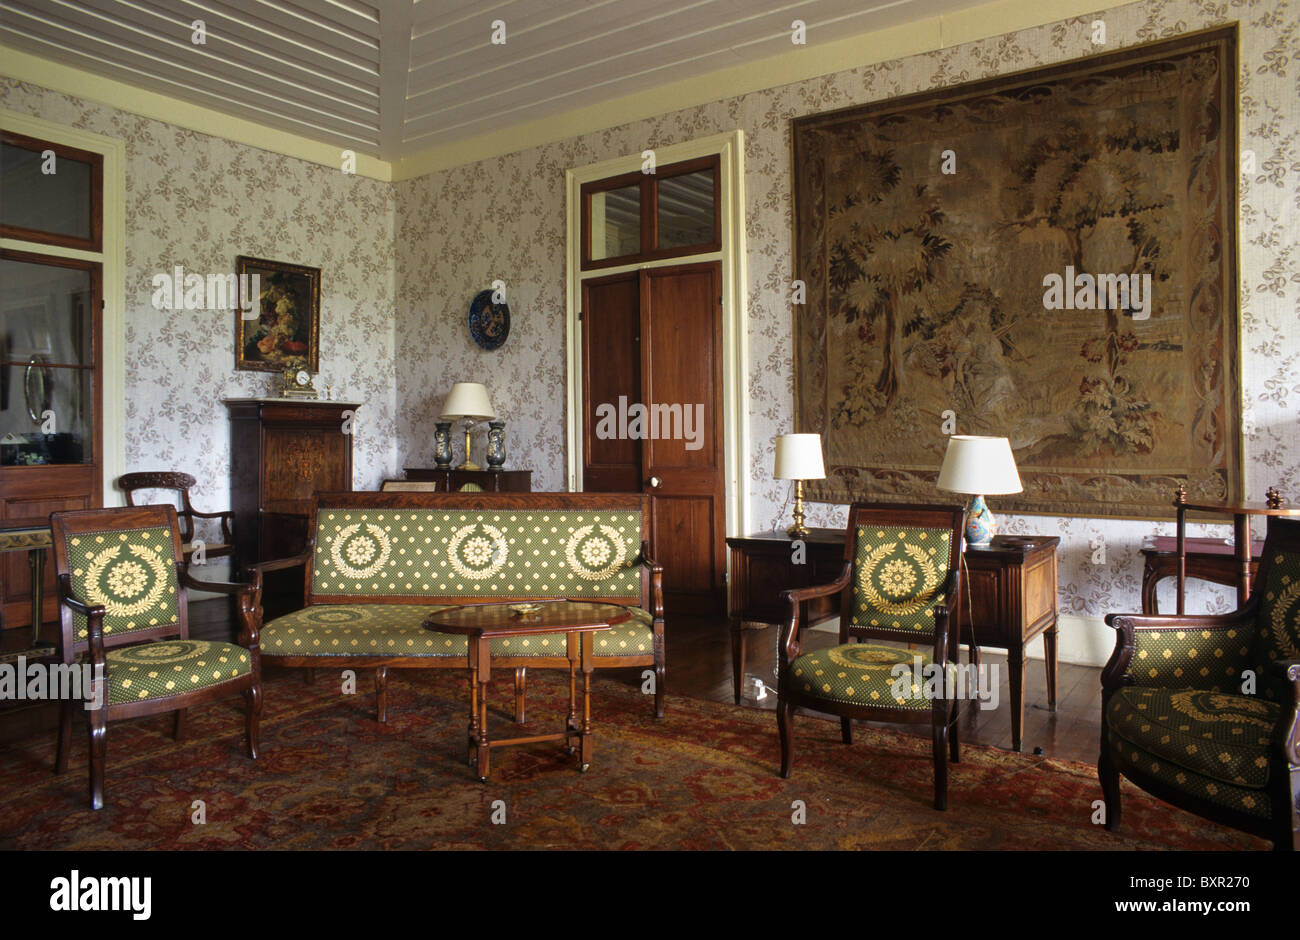 salon living room or interior of riche en eau colonial sugar stock photo royalty free image. Black Bedroom Furniture Sets. Home Design Ideas